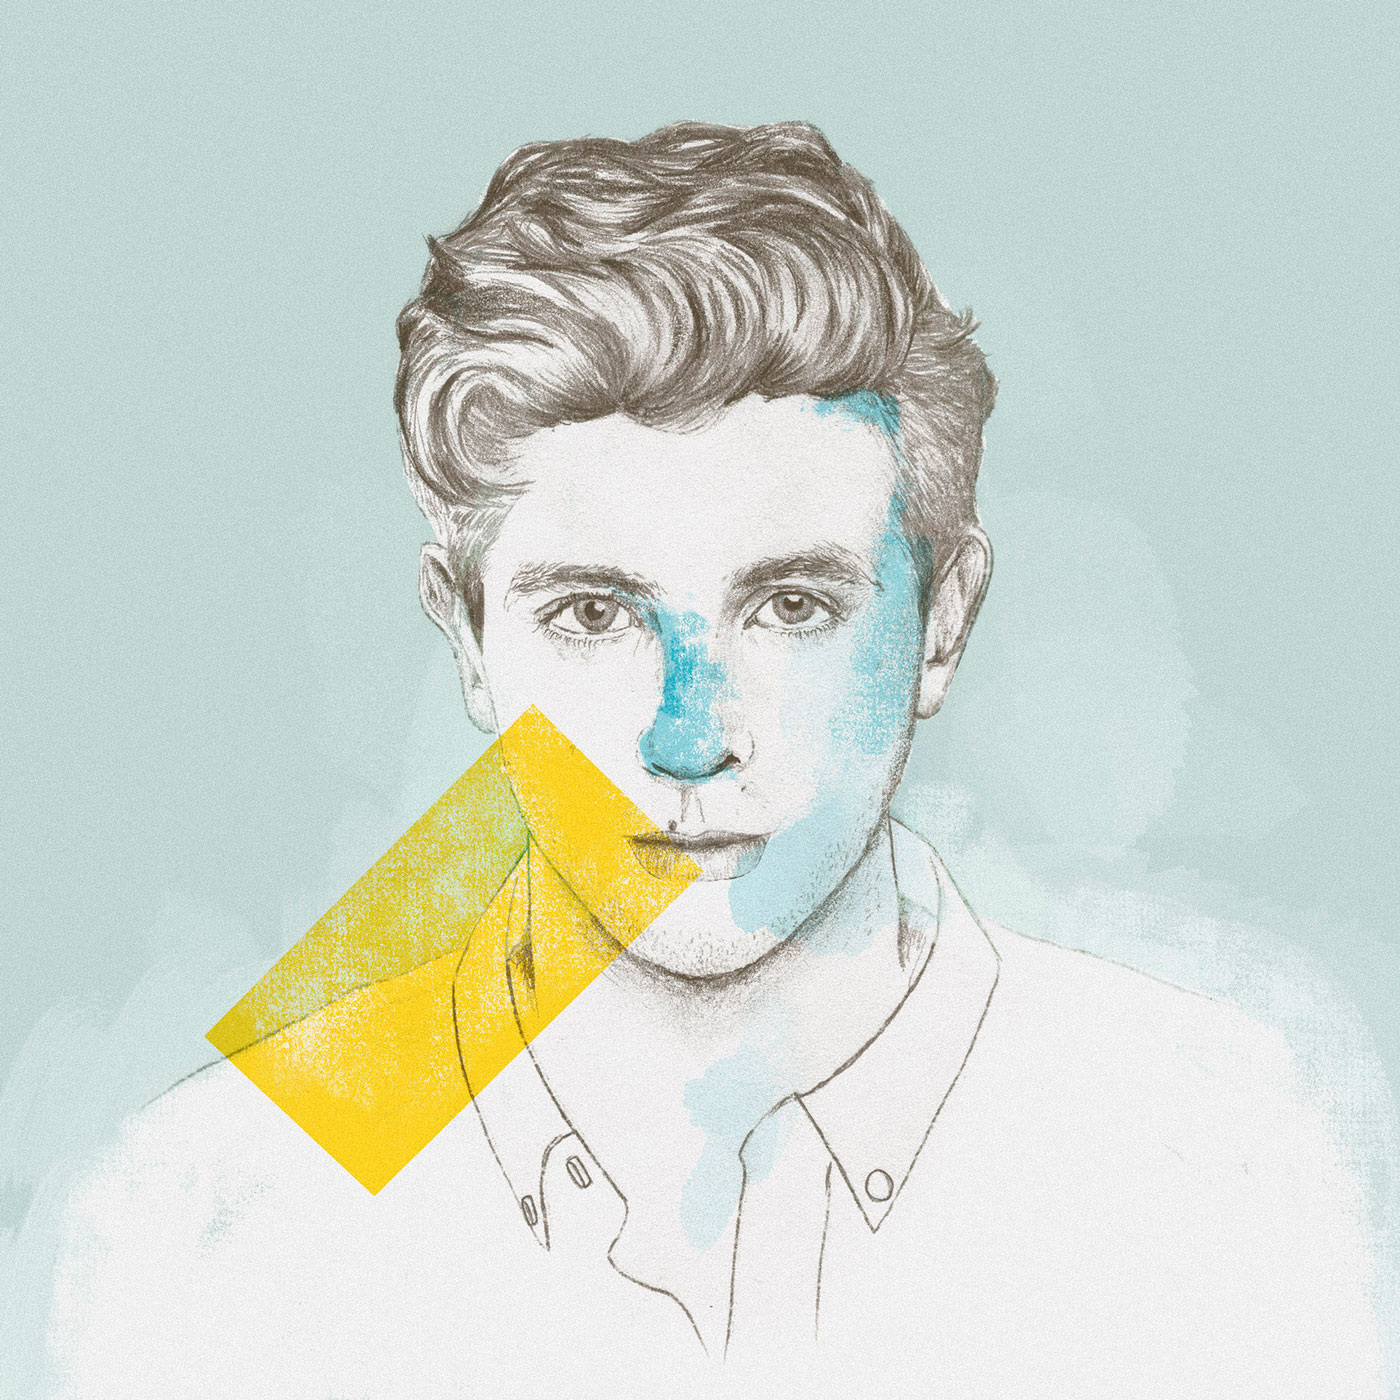 marc_pallares_jamie_xx_illustrationi_1400